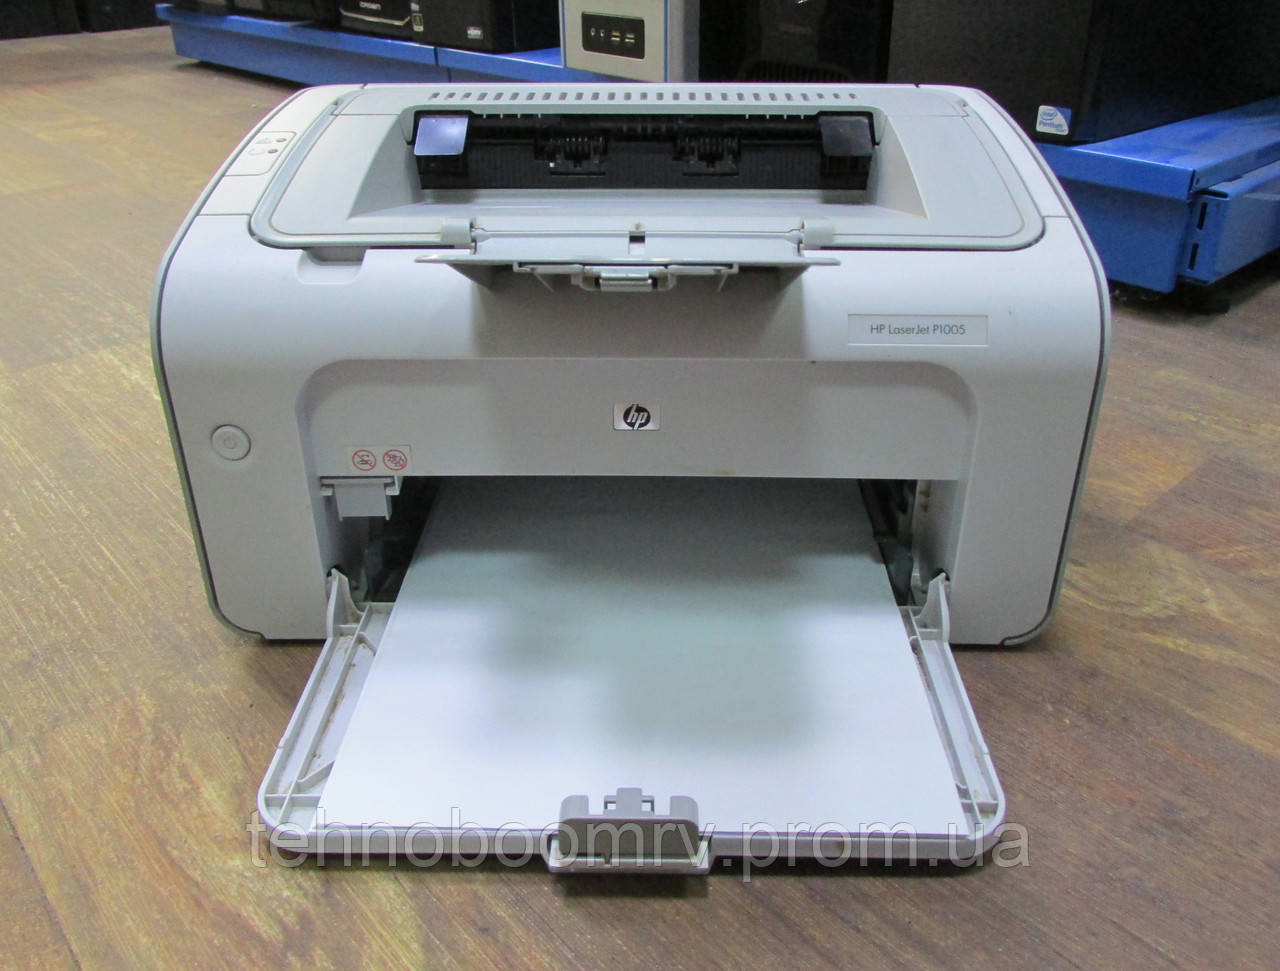 PRINTER HP LASERJET P1005 64BIT DRIVER